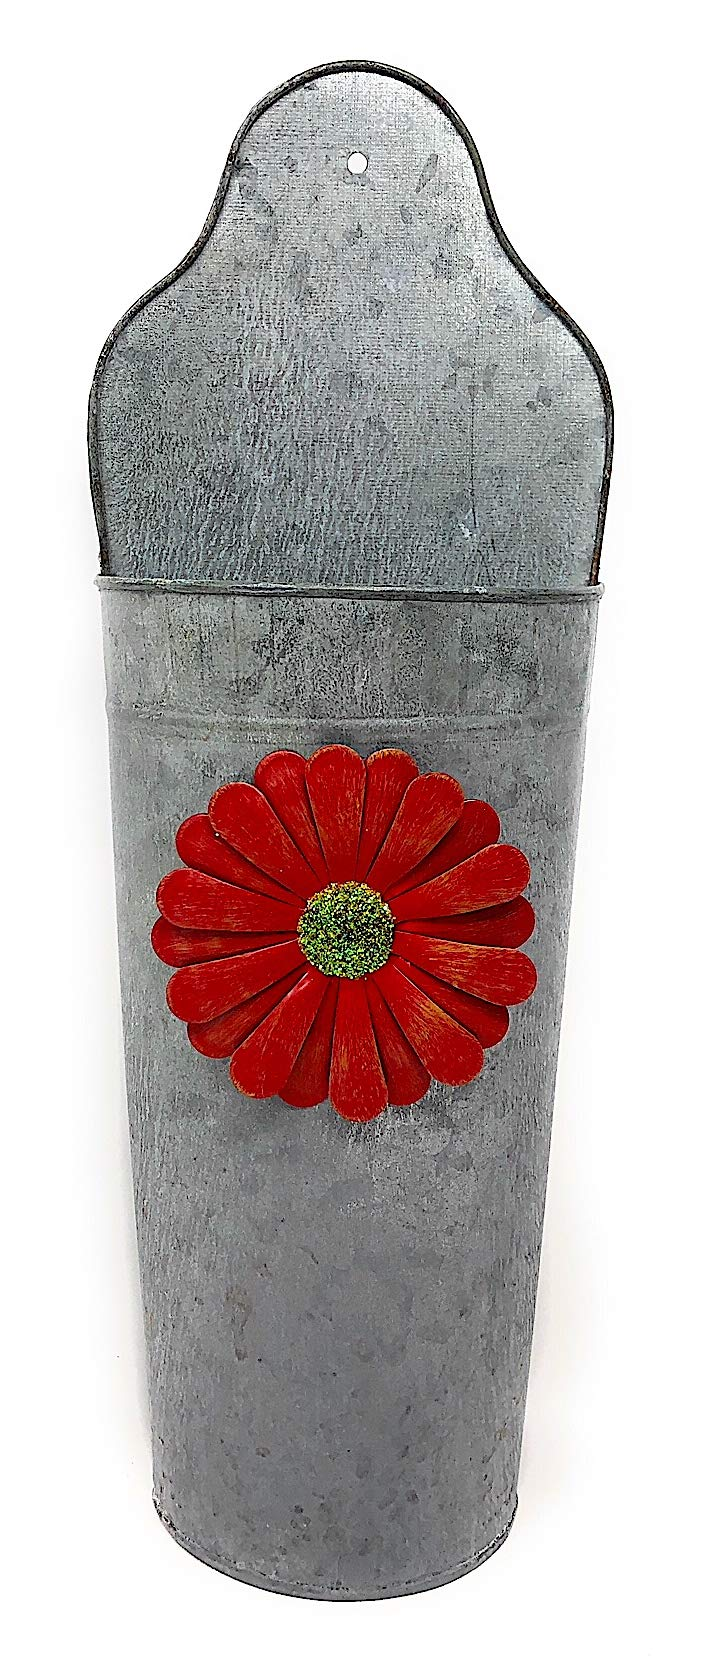 Wall Planter W Red Flower Hanging Galvanized Metal Half Bucket Container Organizer for Flowers Succulent Air Decorative Plants Tools Distressed Indoor Outdoor 16.5'' x 6''